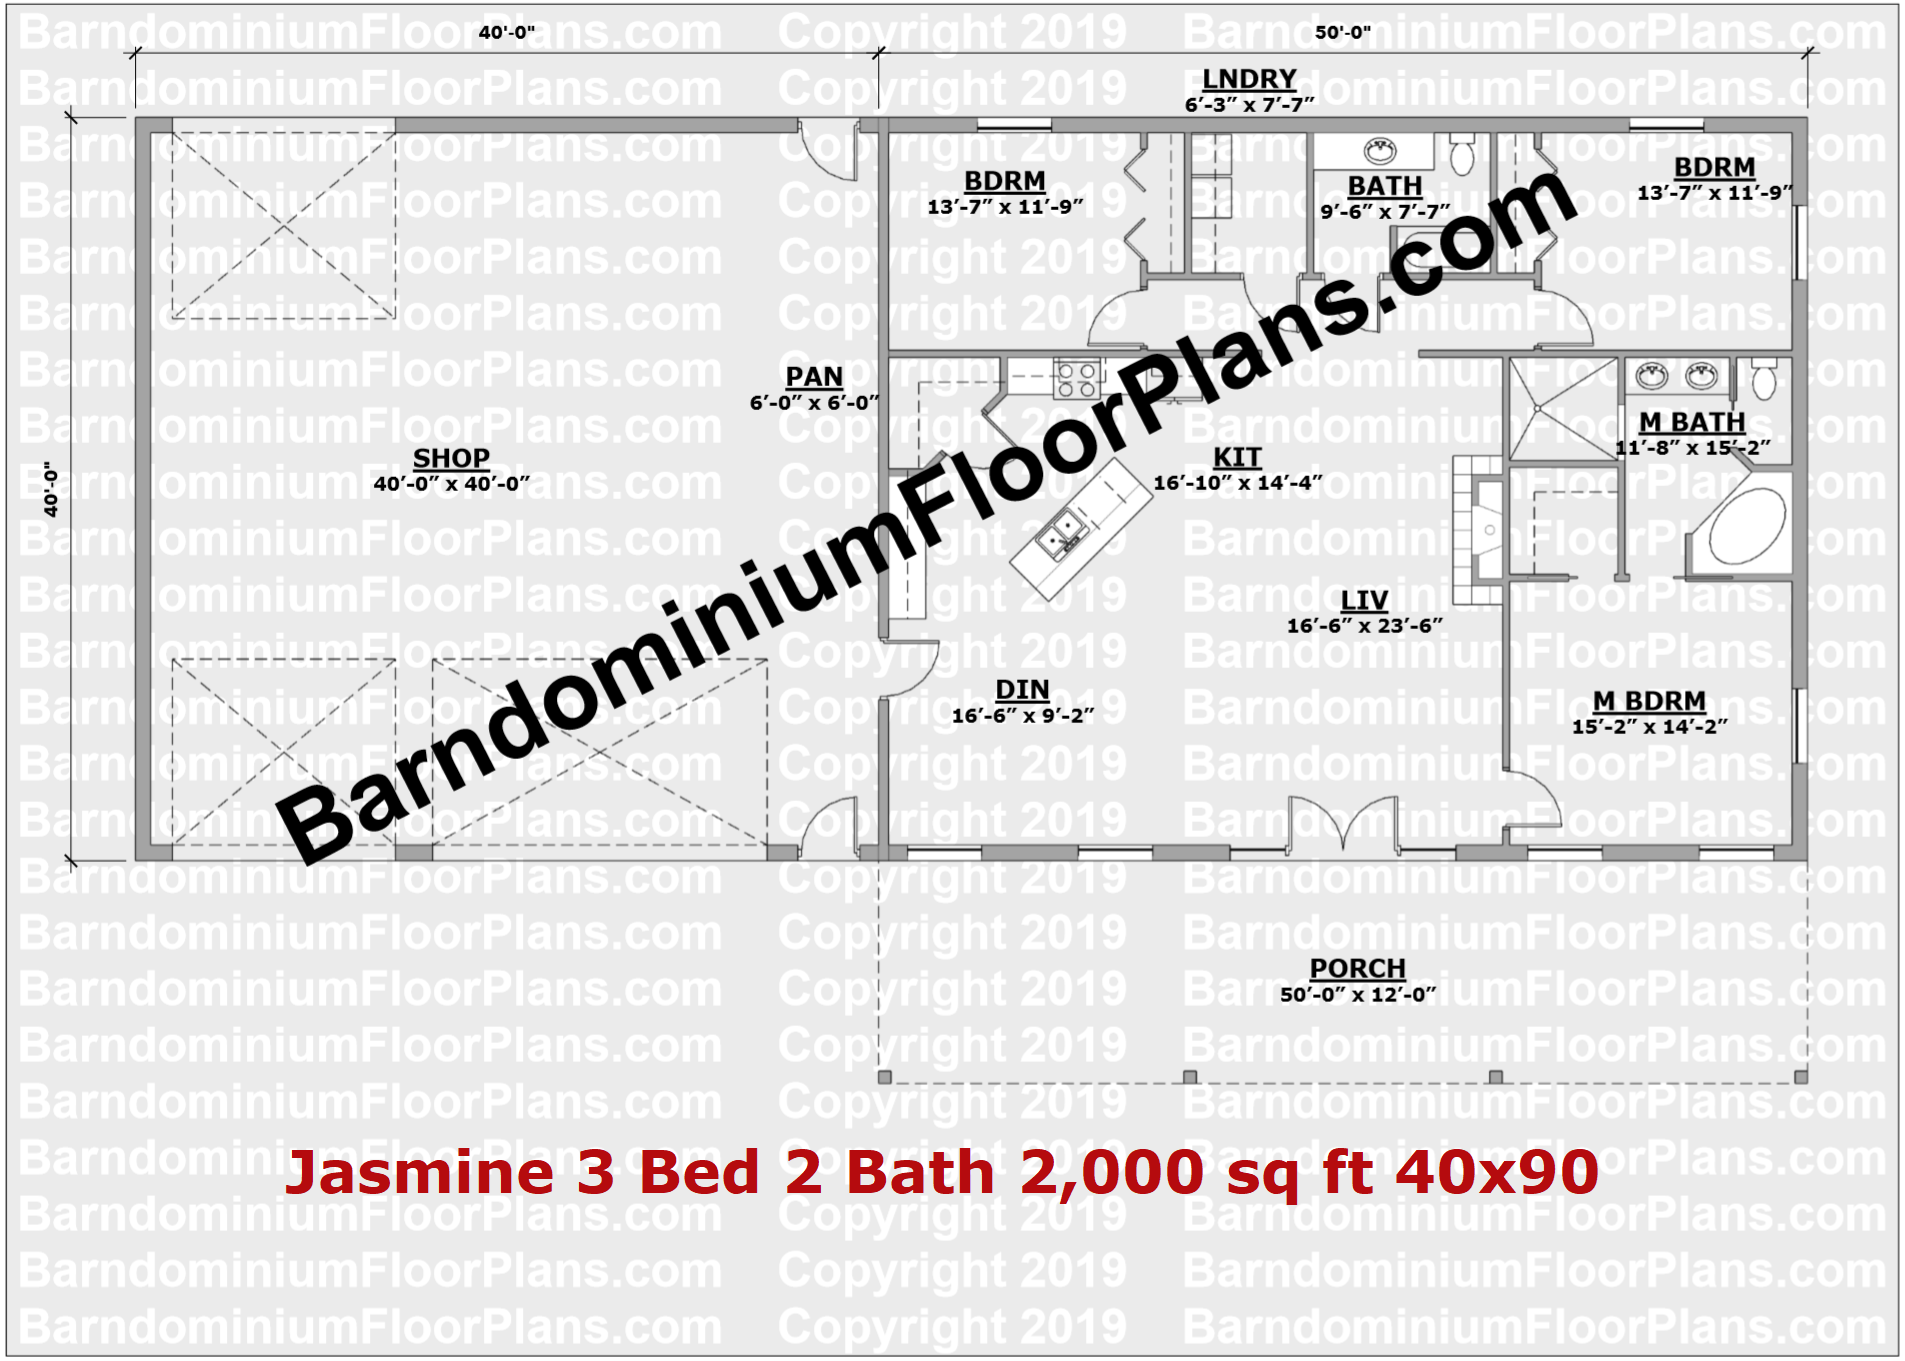 40 foot wide barndominium floor plan 3 bedroom 2 bath - Jasmine